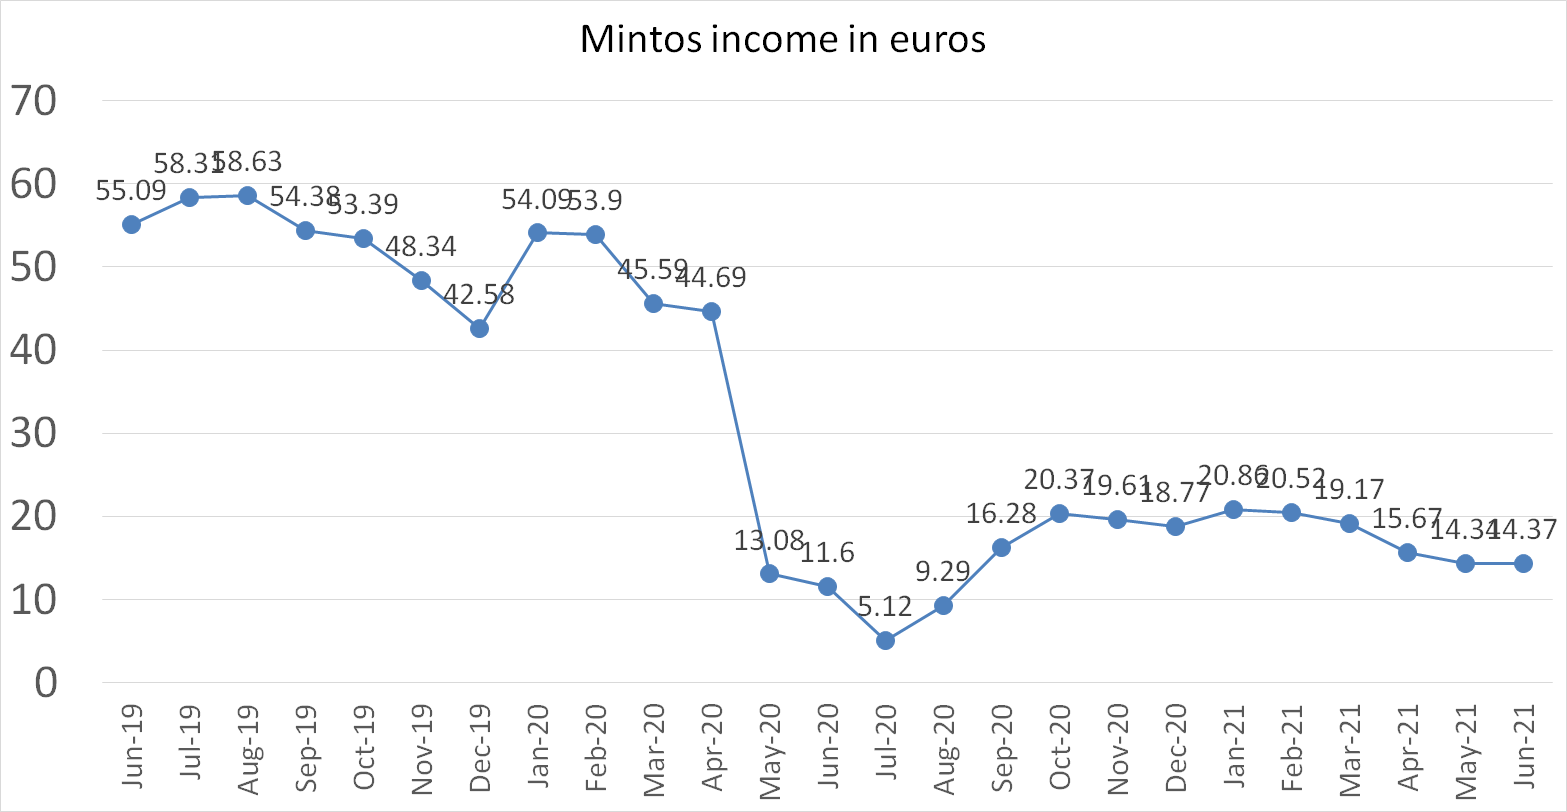 Mintos income in June 2021